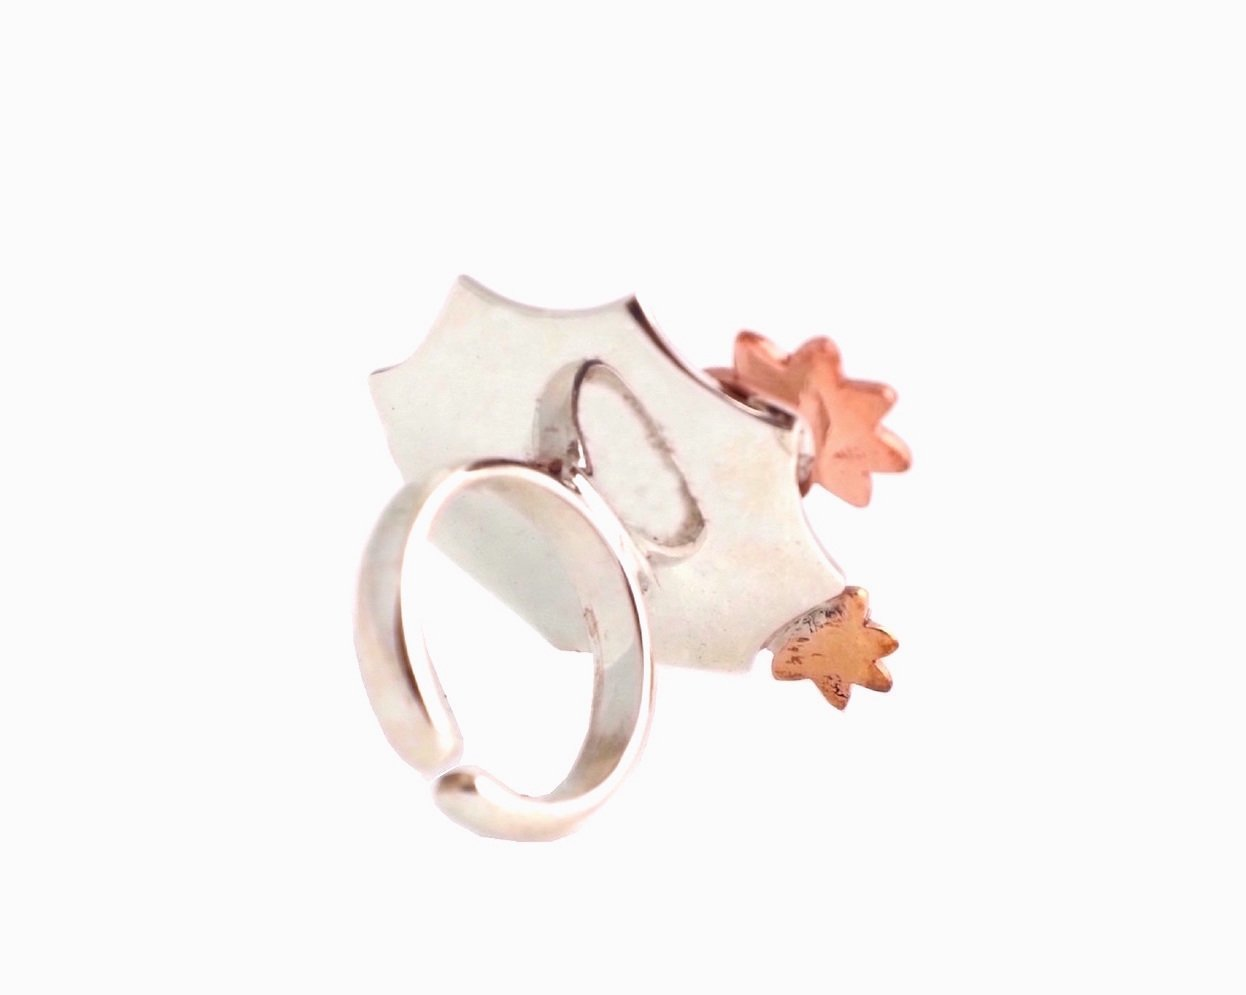 Back view of cocktail ring